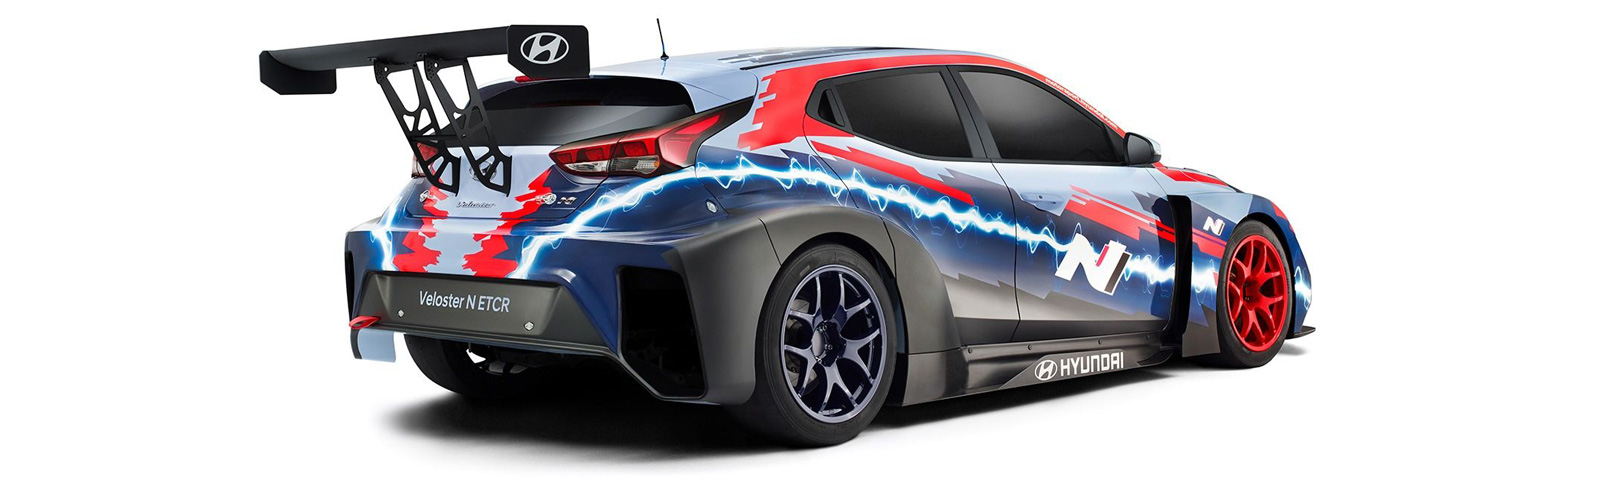 Hyundai Motorsport unveils its first all-electric race car - the Veloster N ETCR